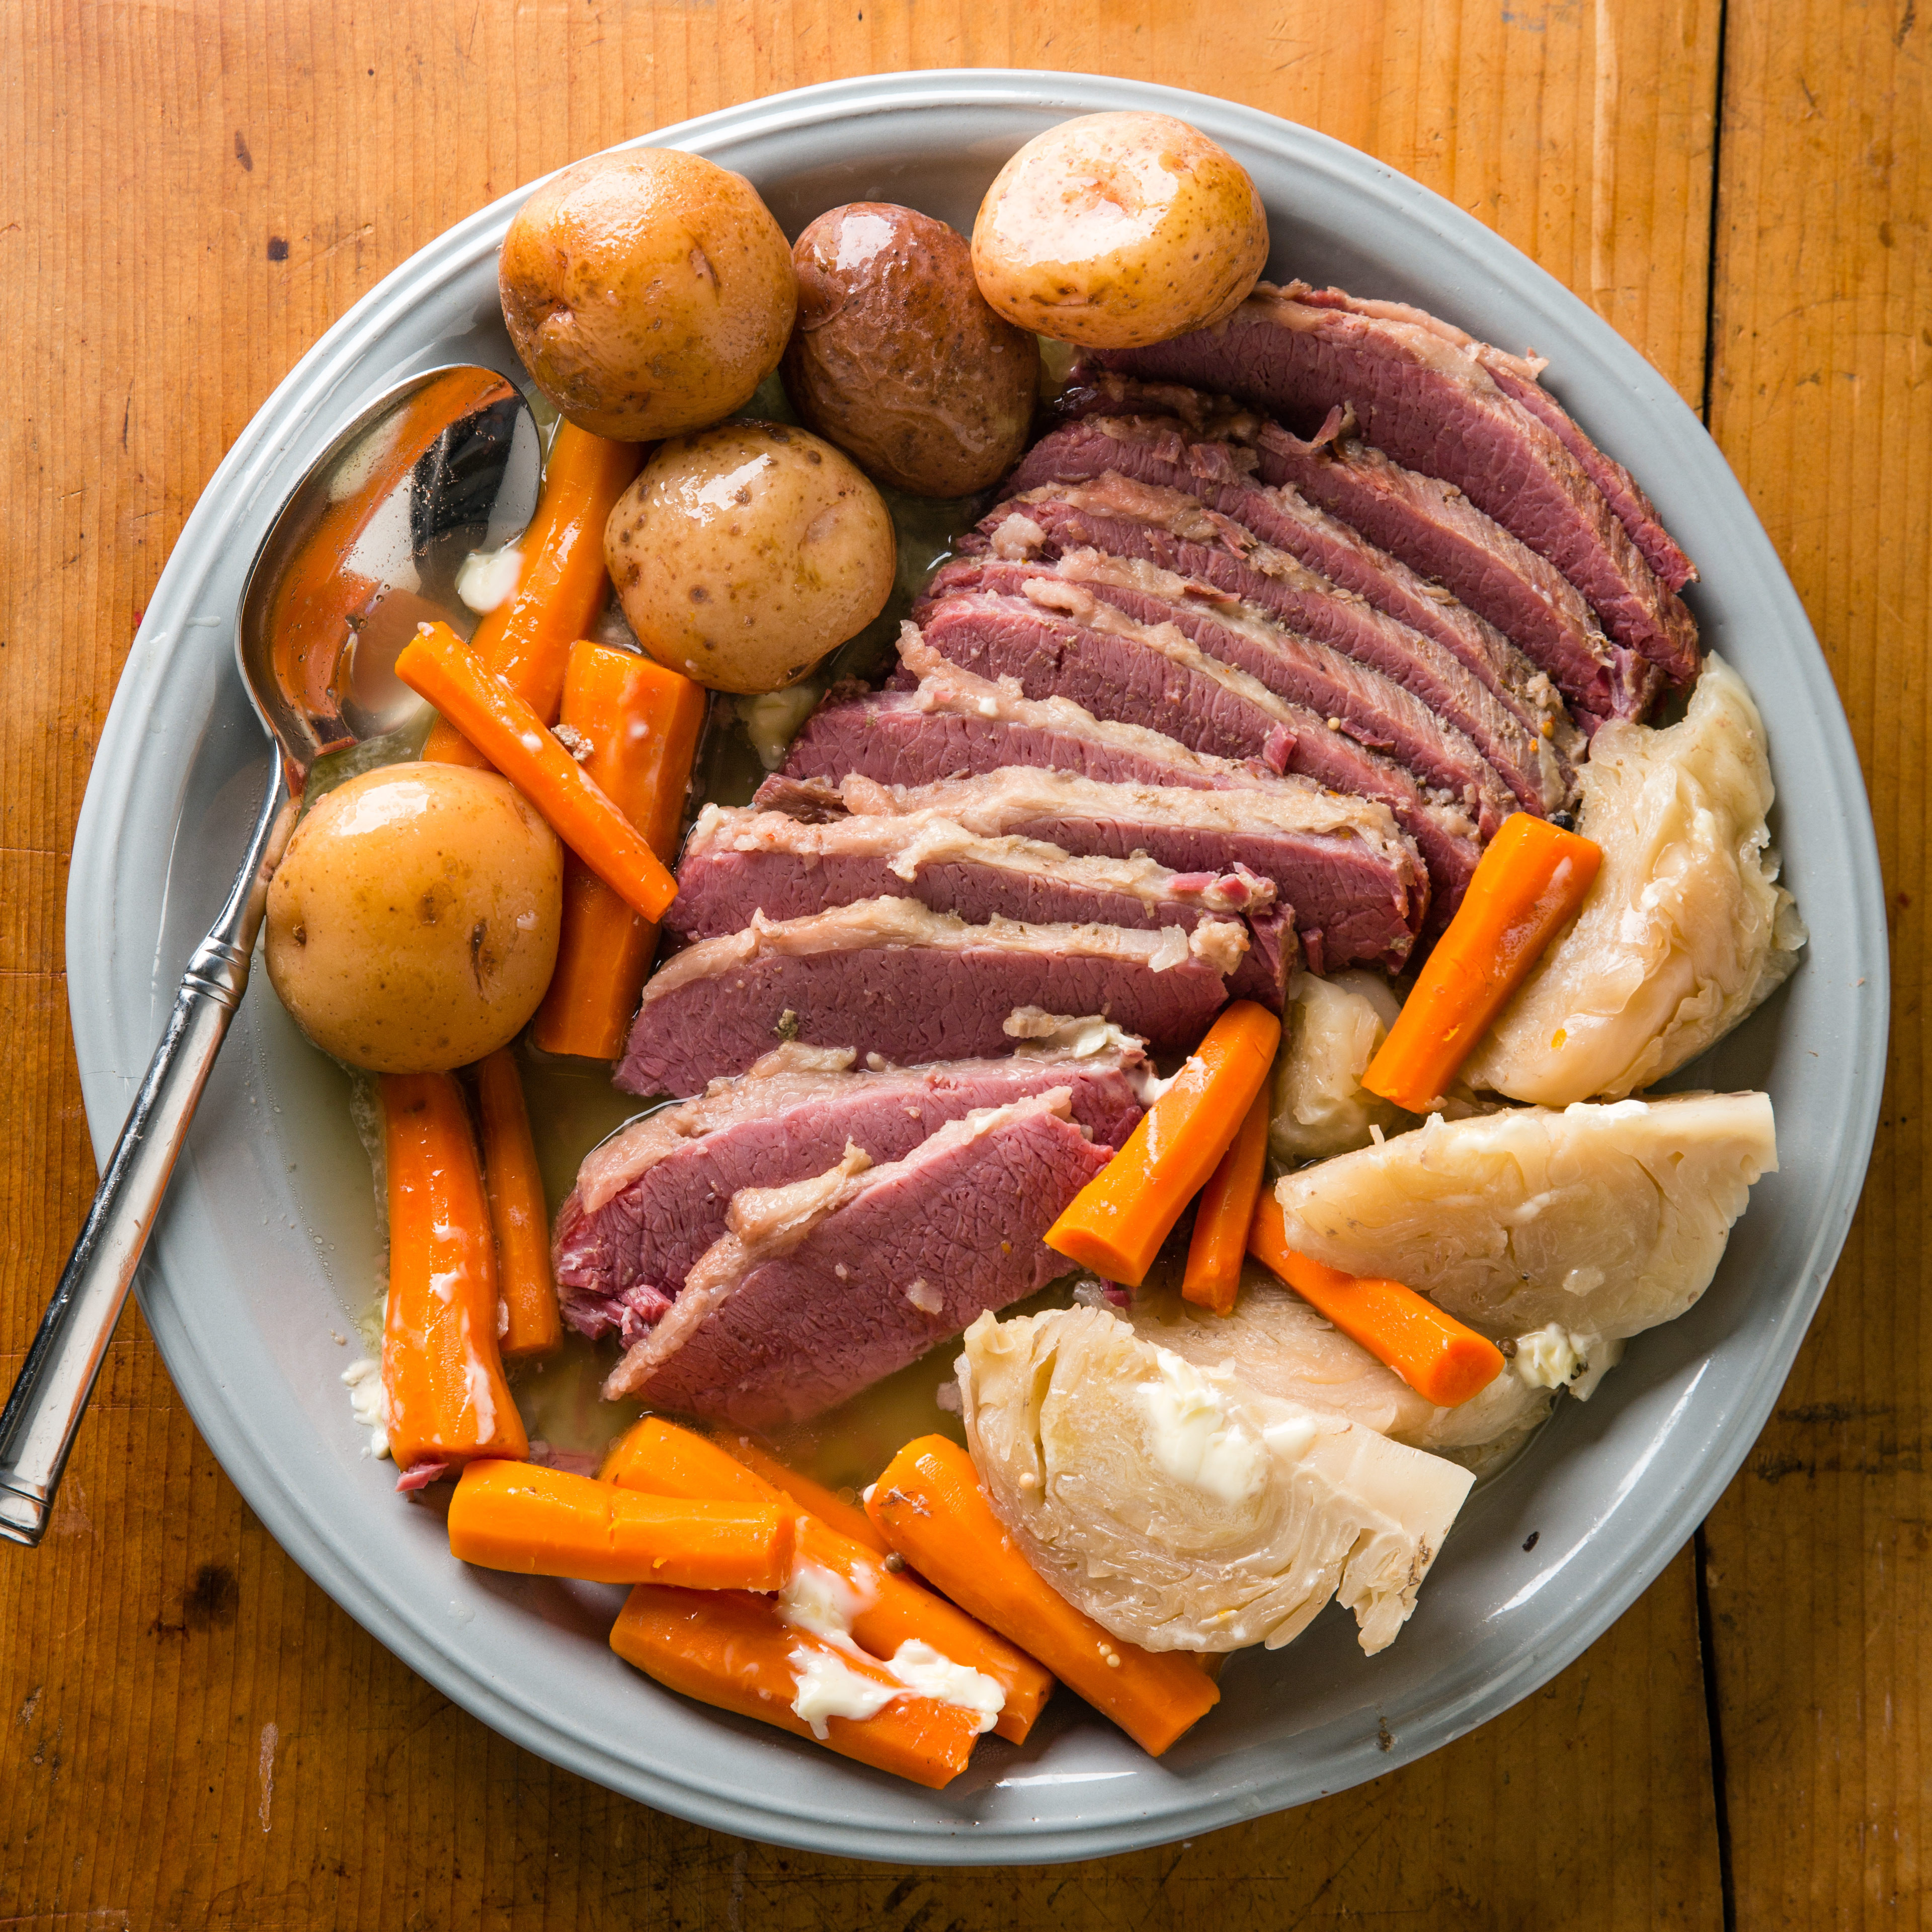 Corned Beef Cabbage Slow Cooker  Slow Cooker Corned Beef and Cabbage